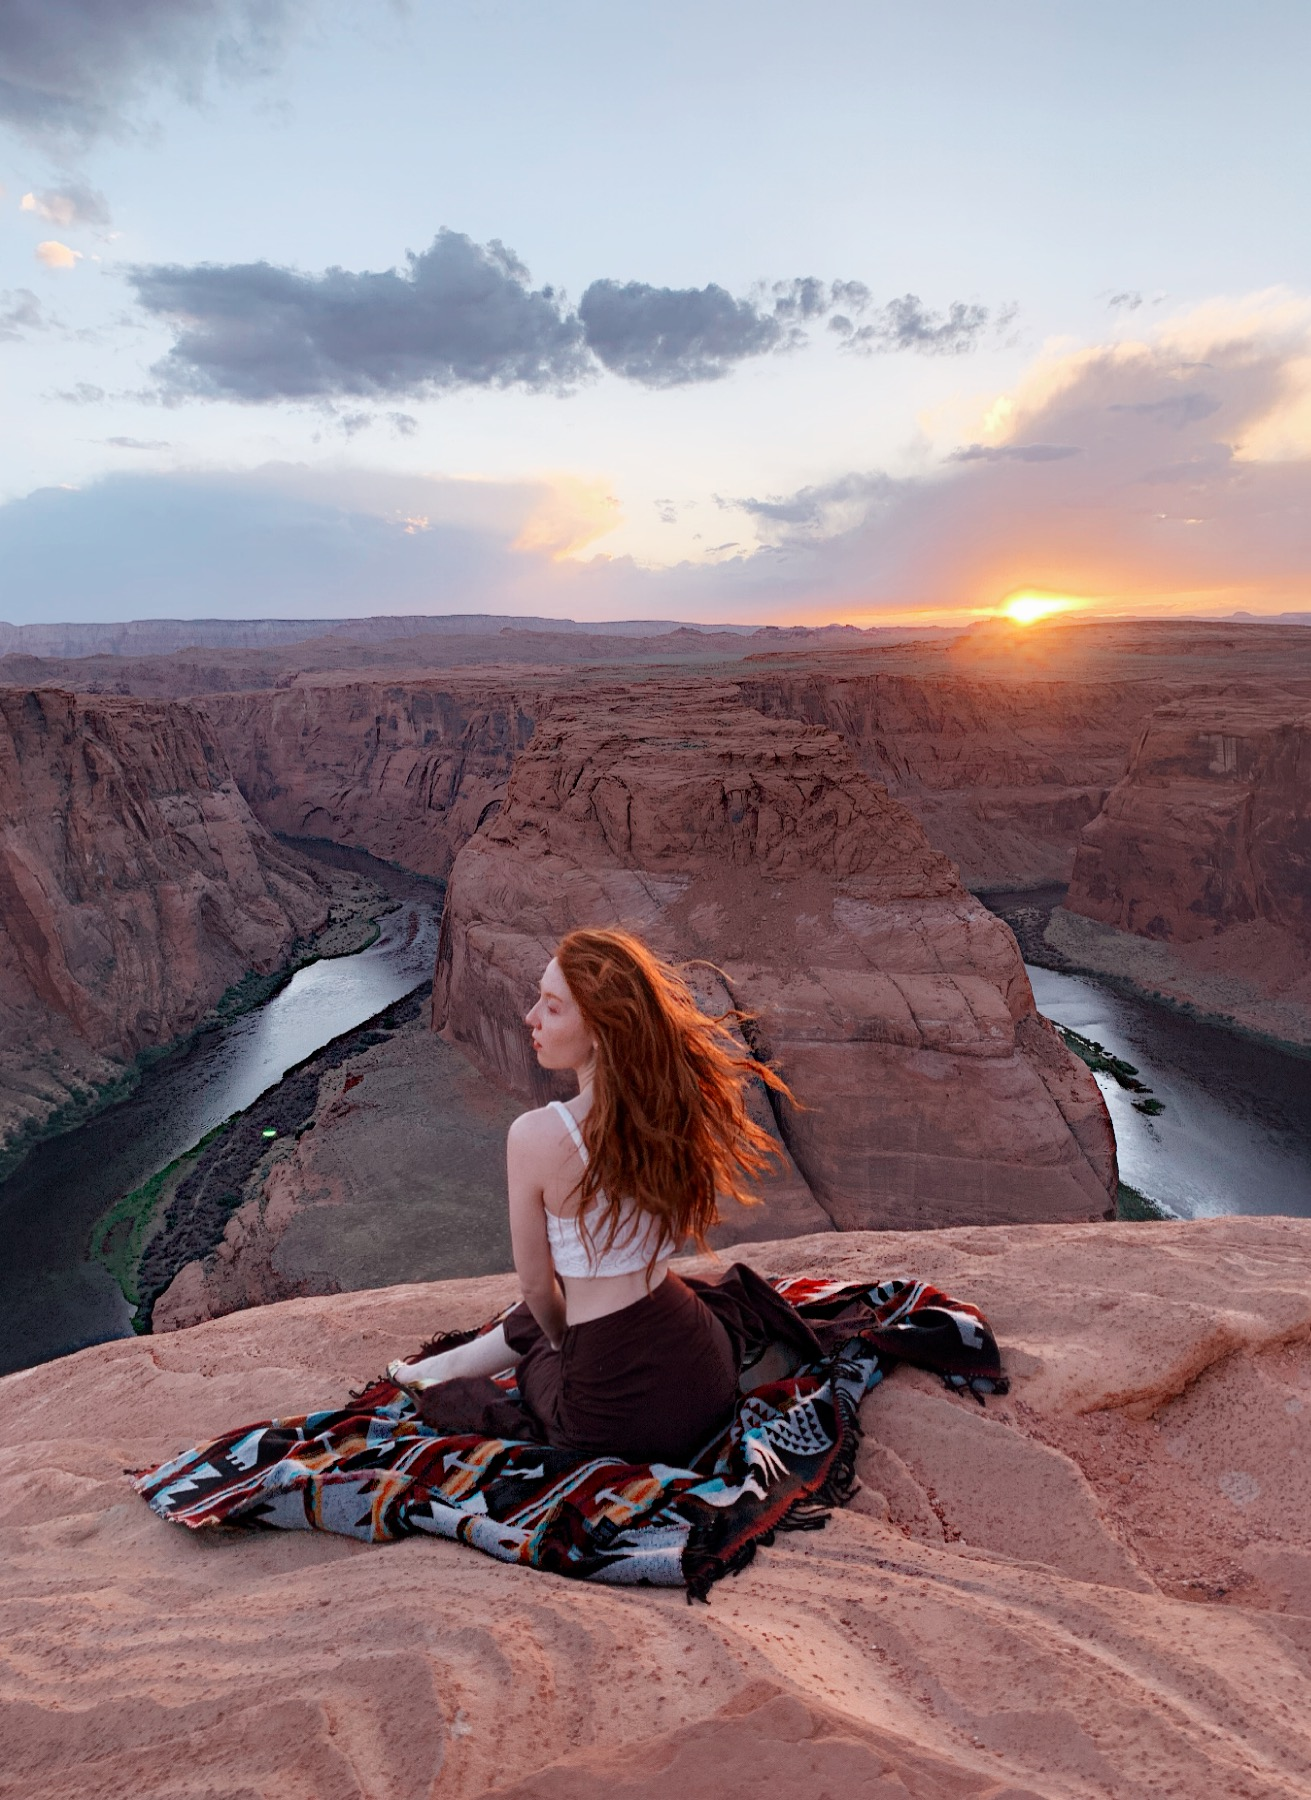 Glennellen visiting the Horseshoe Bend in Arizona. Blanket sponsored by  SACKCLOTH & ASHES .